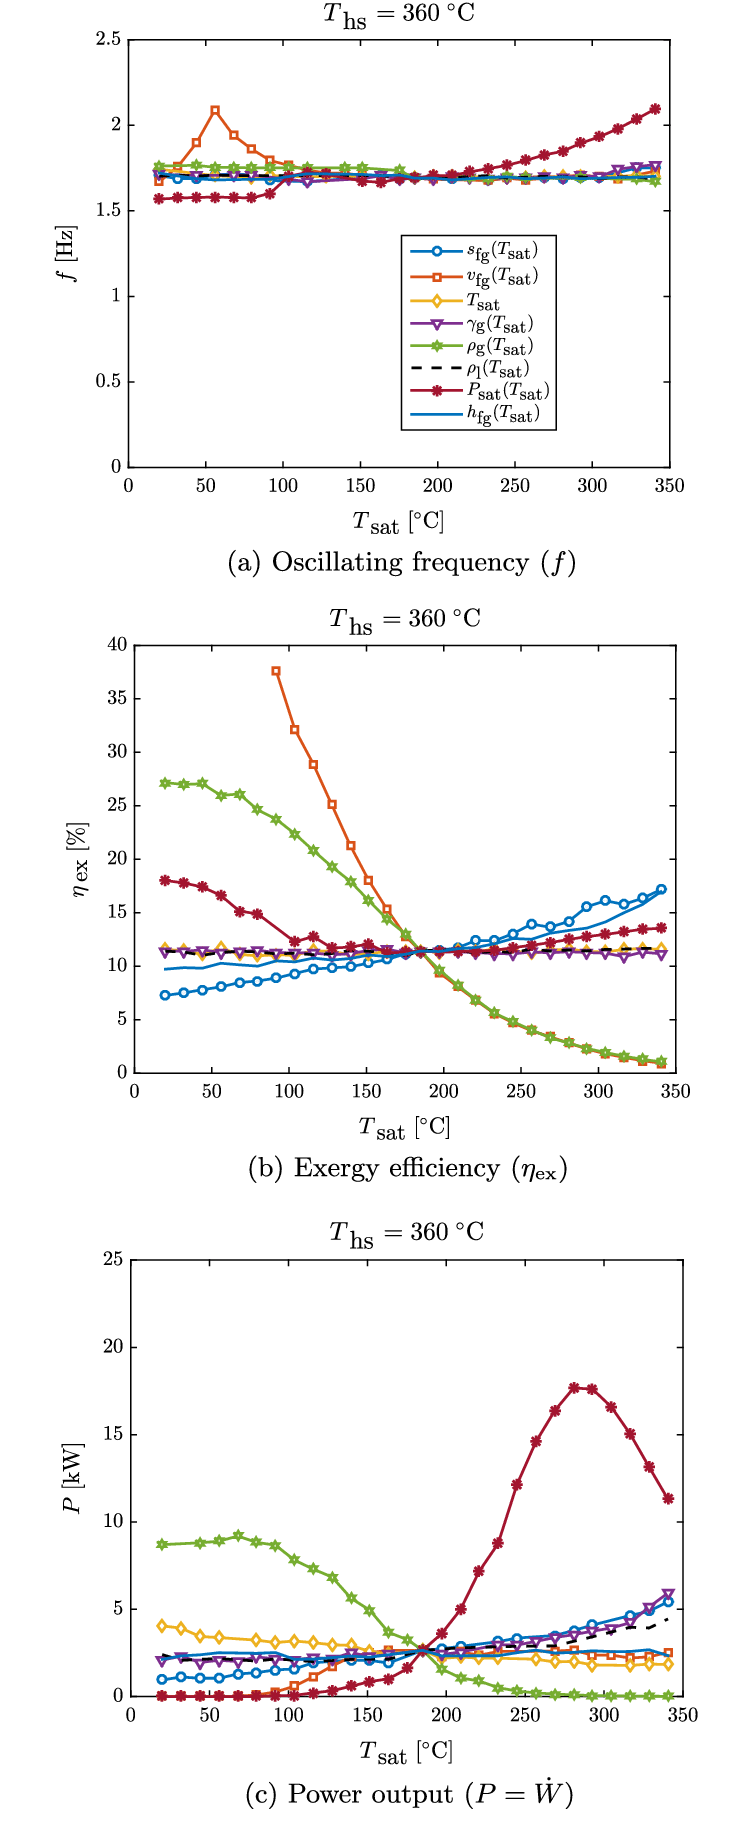 medium resolution of performance indices of the up therm heat engine with water as the working fluid on